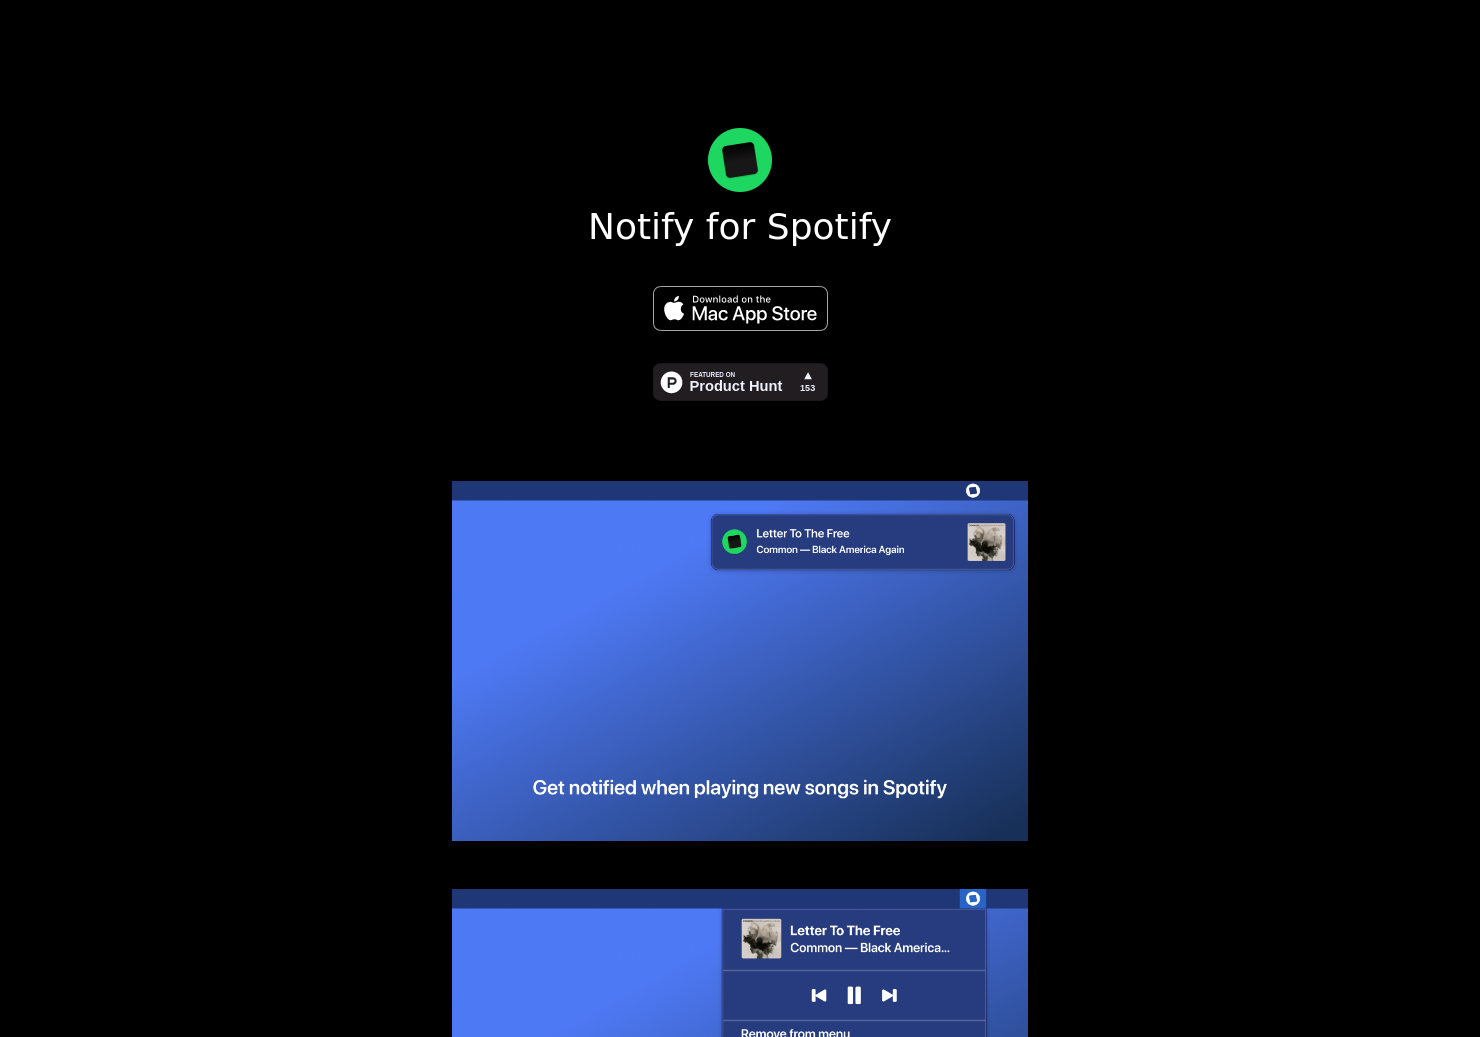 Notify for Spotify